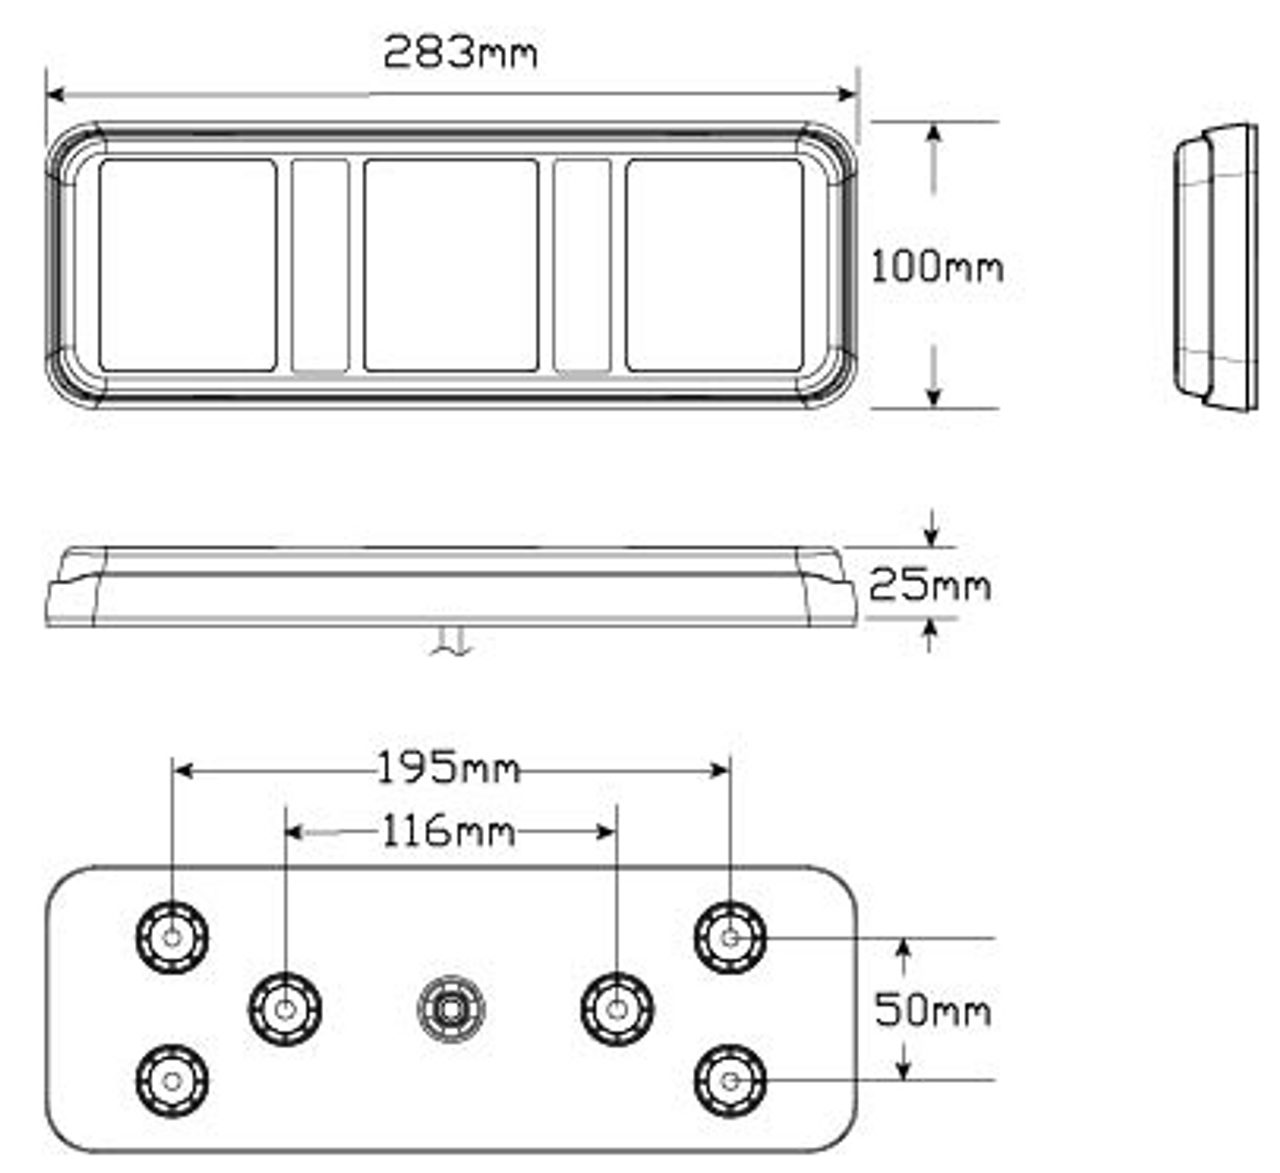 Line Drawing - 283ARWM - Stop Tail Indicator Reverse. Multi-volt, Single Pack. Screw or Bolt Mounting with Removable Bracket. AL. Ultimate LED.